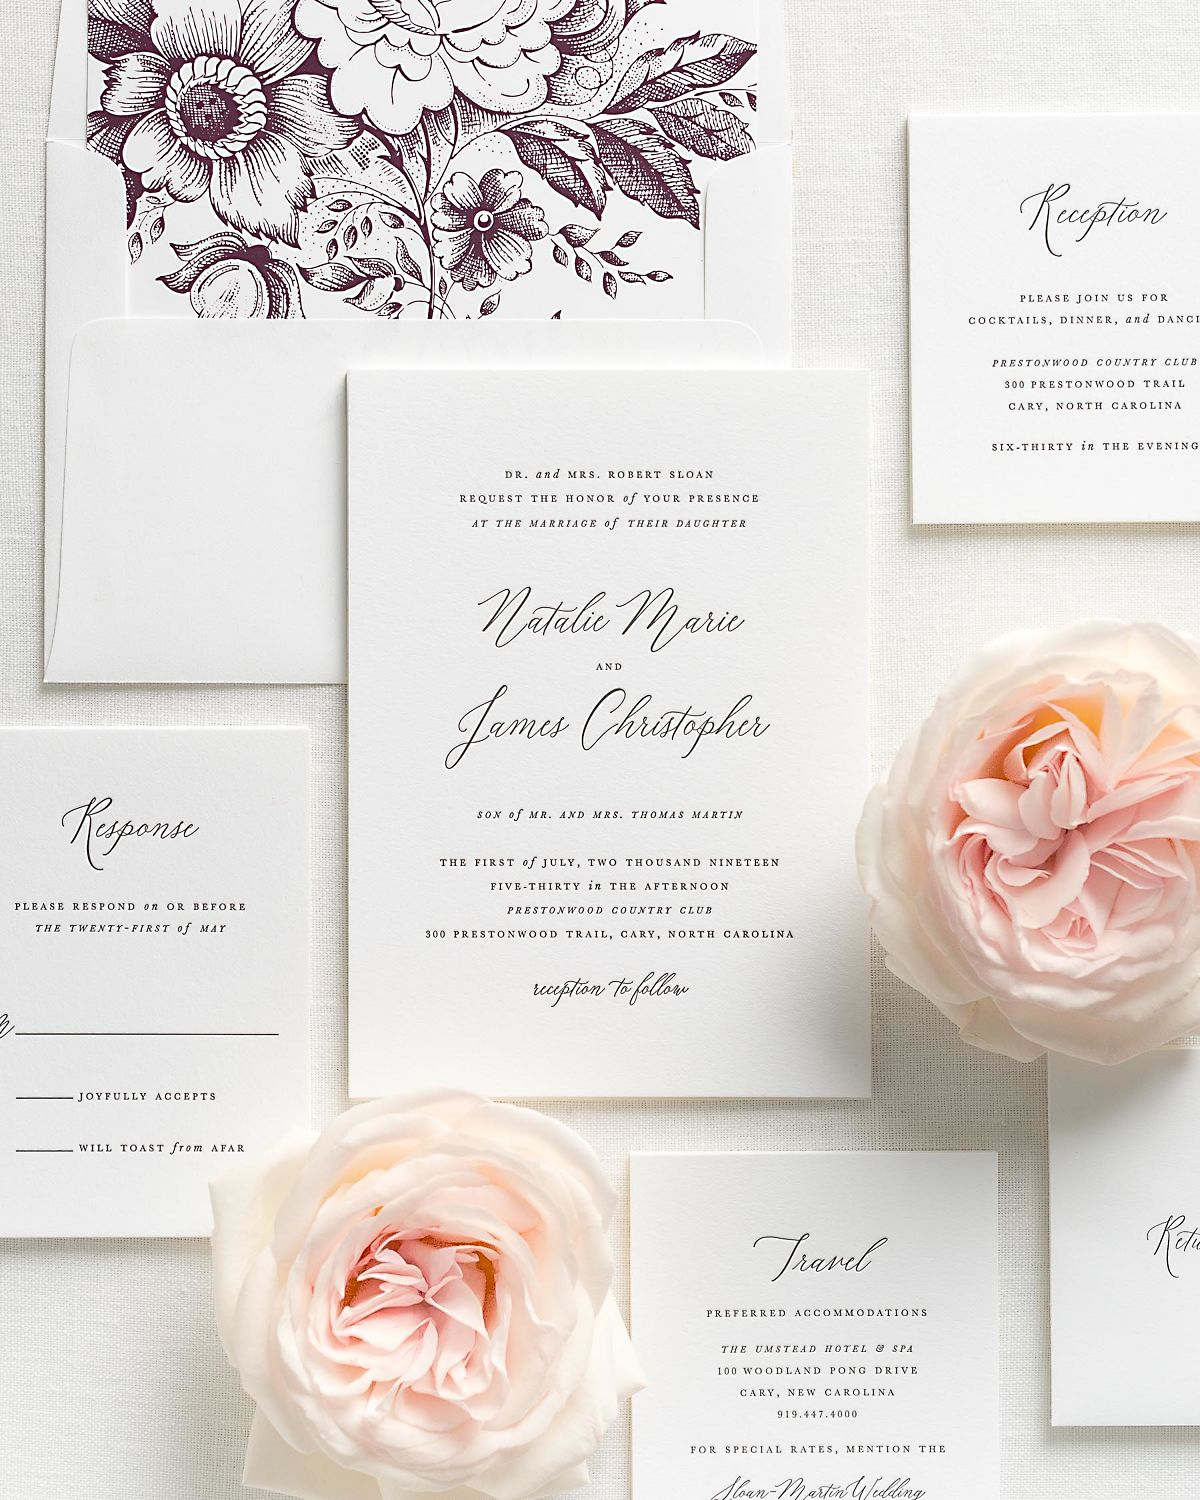 Letterpress Wedding Invitations with Fig Garden Rose Envelope Liner and Matching Accessories